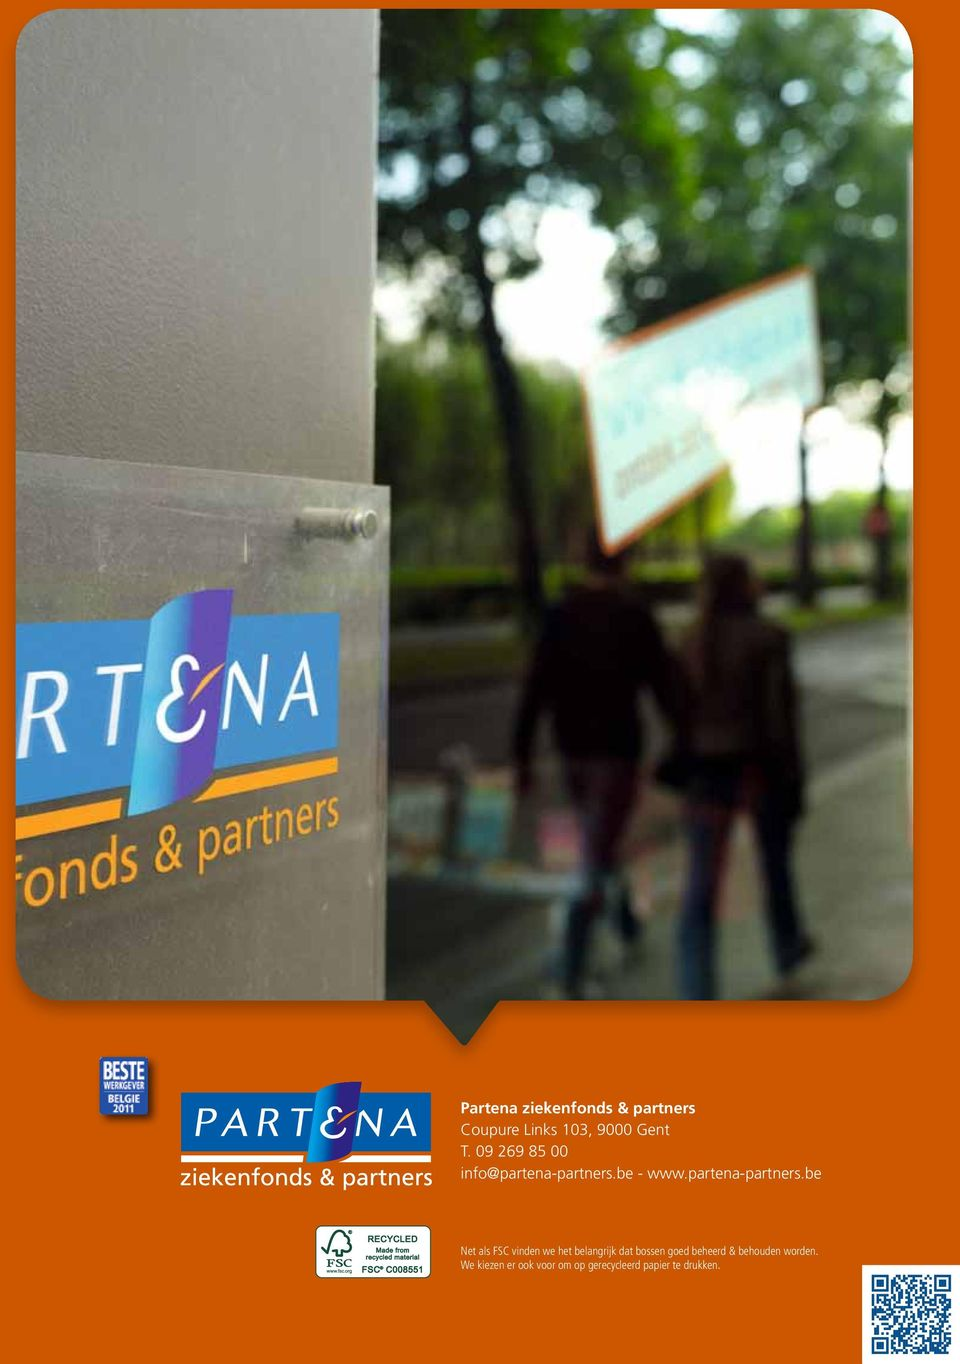 be - www.partena-partners.